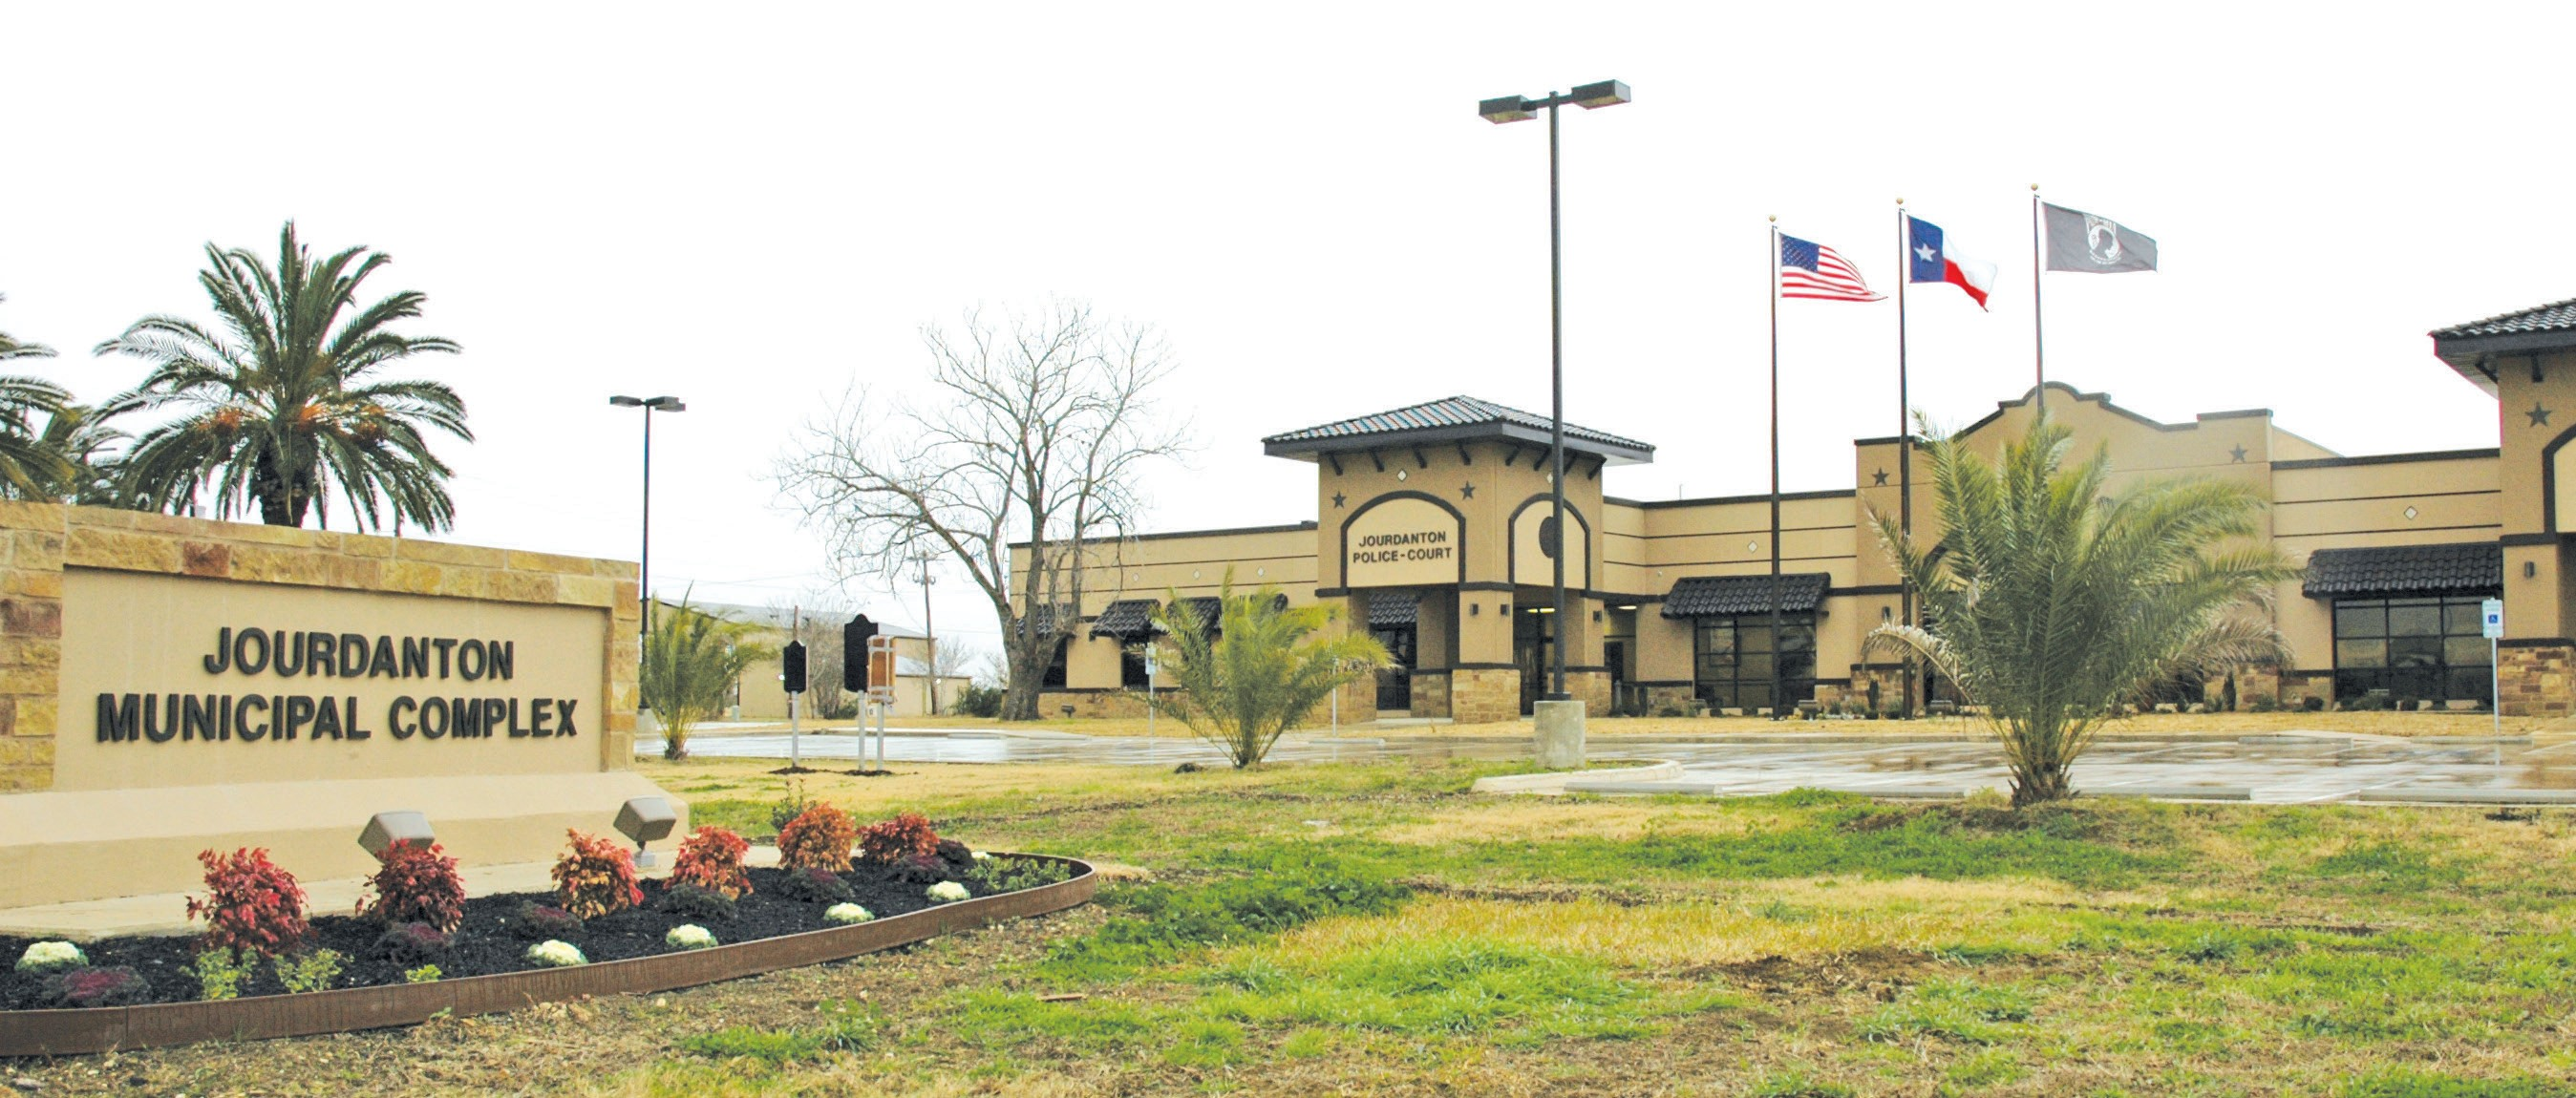 An open house will be held for the new Jourdanton Municipal Complex on Thursday, January 30. The dedication of the historical marker will be held at 3:30 p.m., ribbon cutting will be at 4:00 p.m. and tours will be conducted until 6:30 p.m.